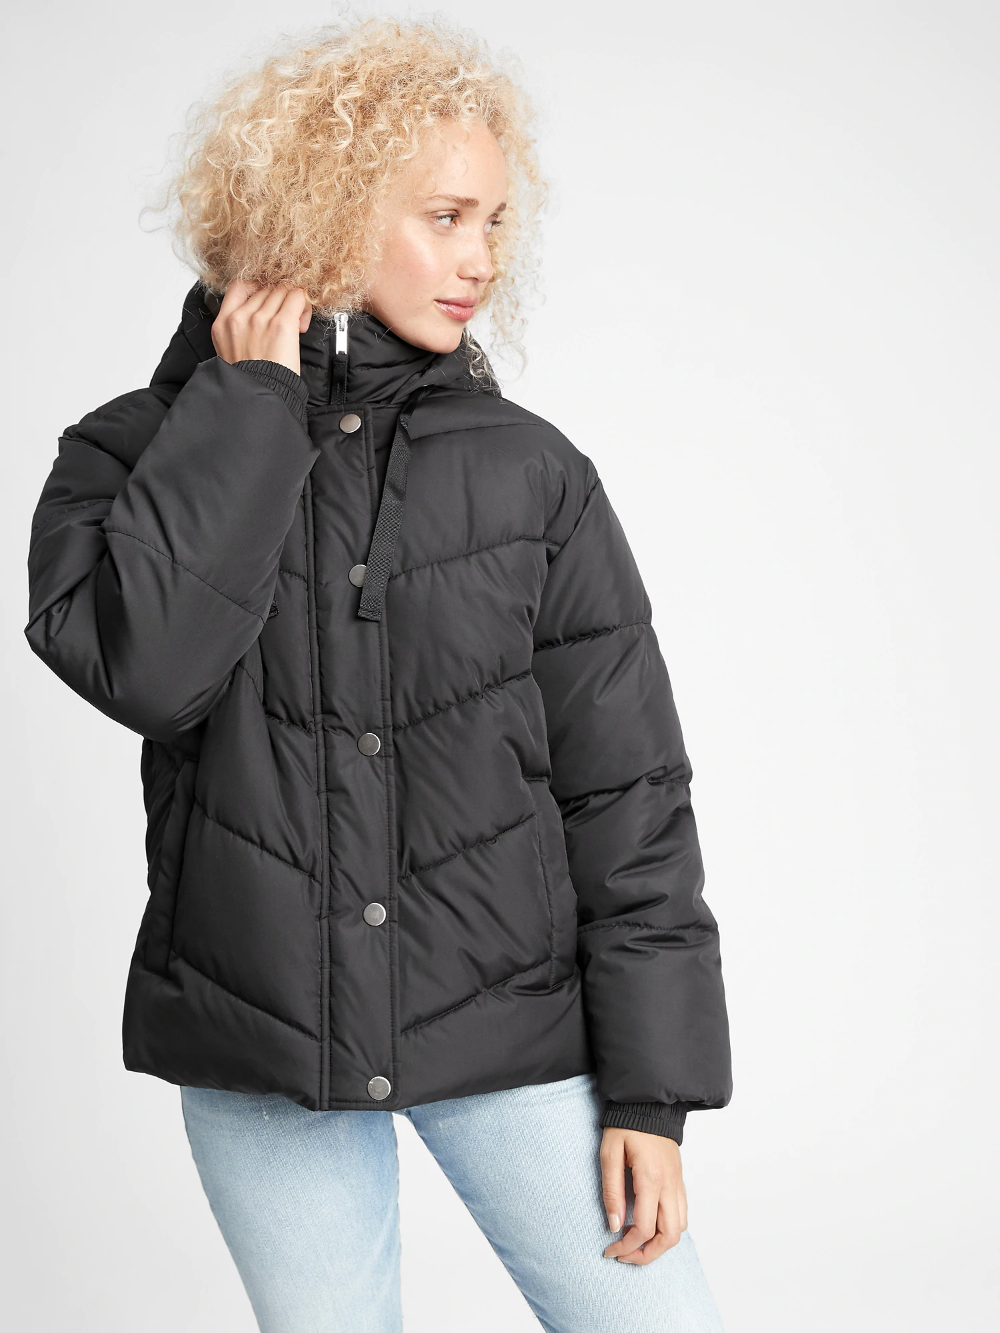 Coldcontrol Max Puffer Jacket Gap Factory Puffer Jackets Jackets Puffer [ 1333 x 1000 Pixel ]